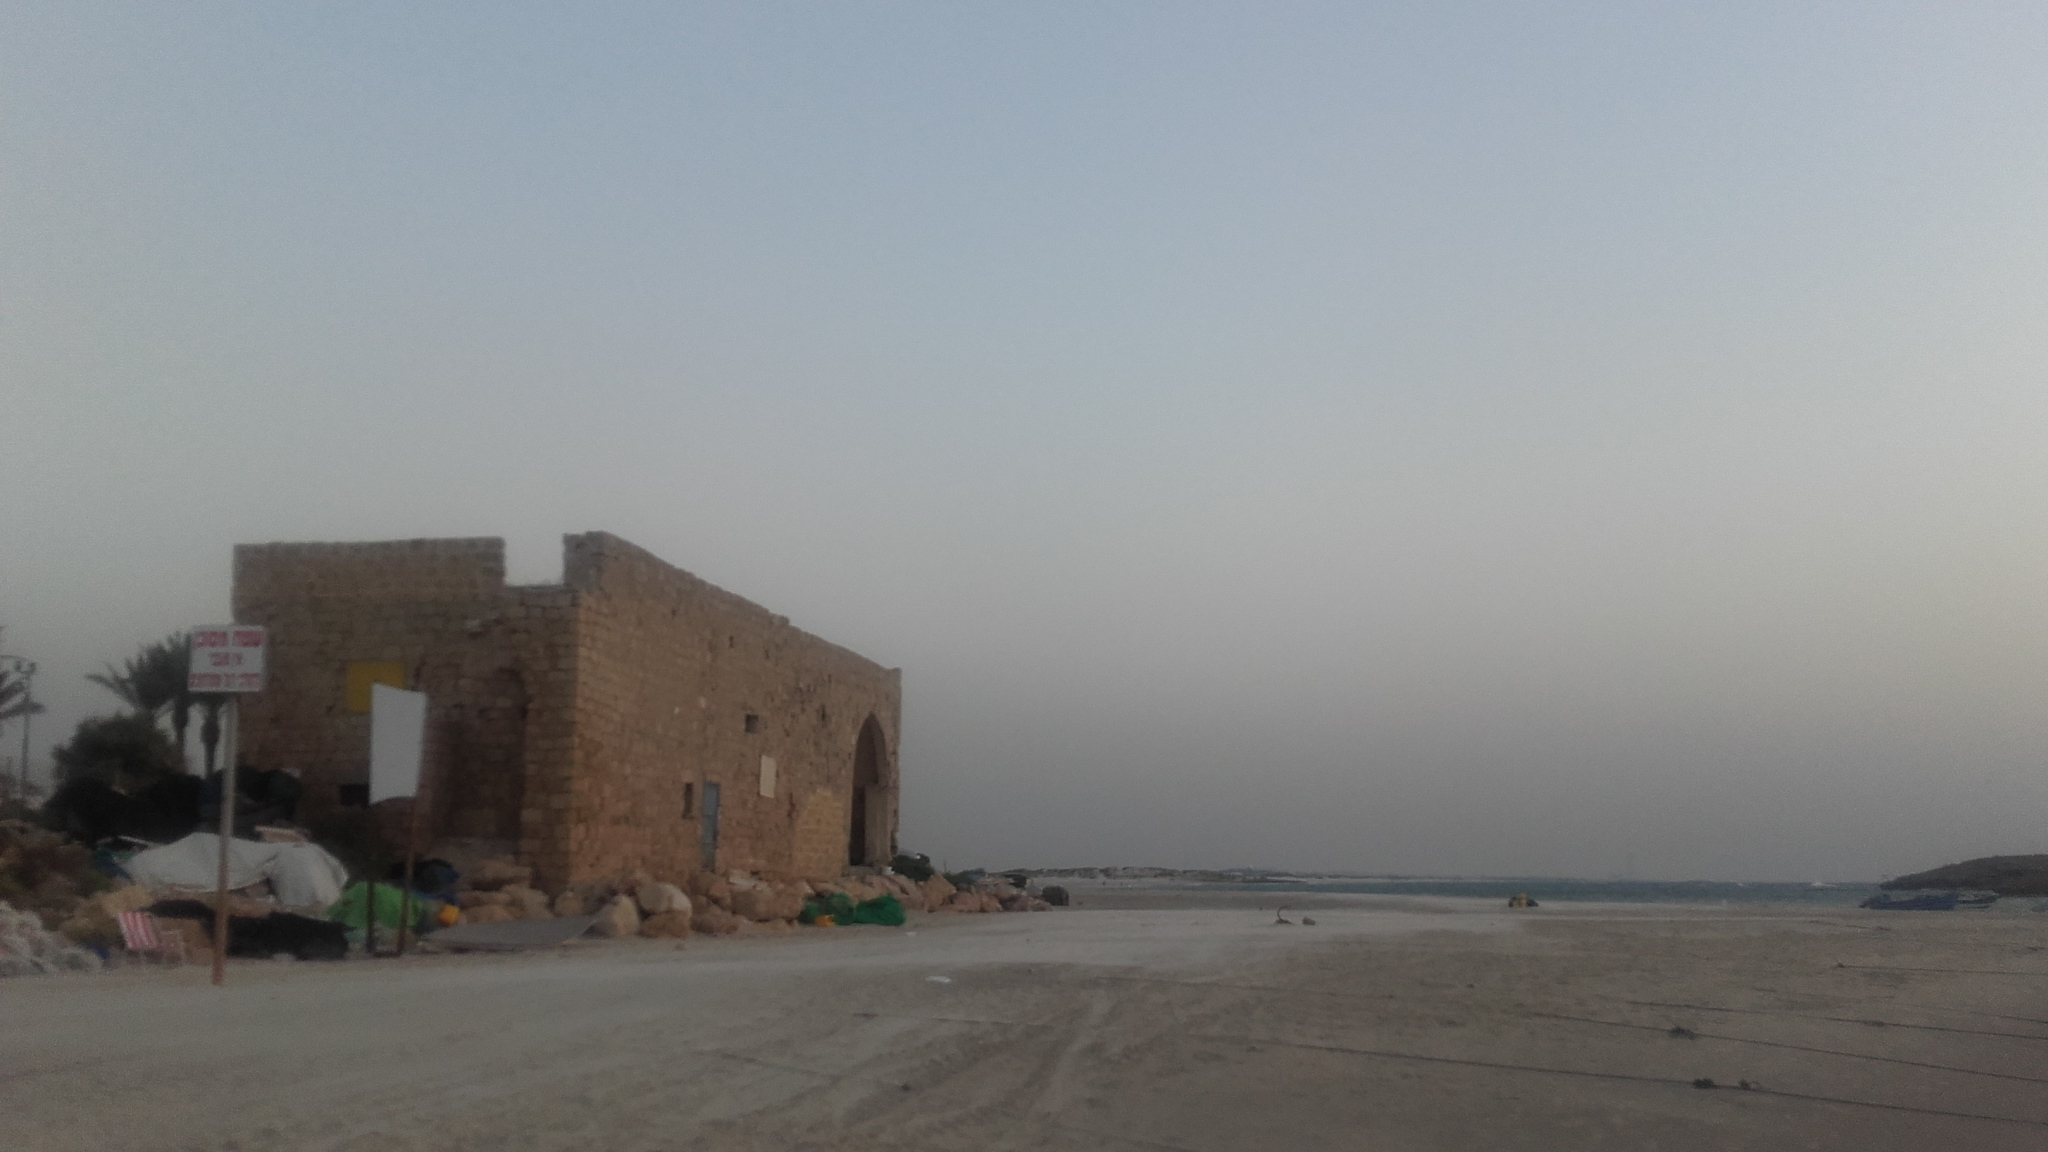 al-Tantura - الطنطورة : The remaining house on the beach, built by Mahmoud Yahya in the 1800's